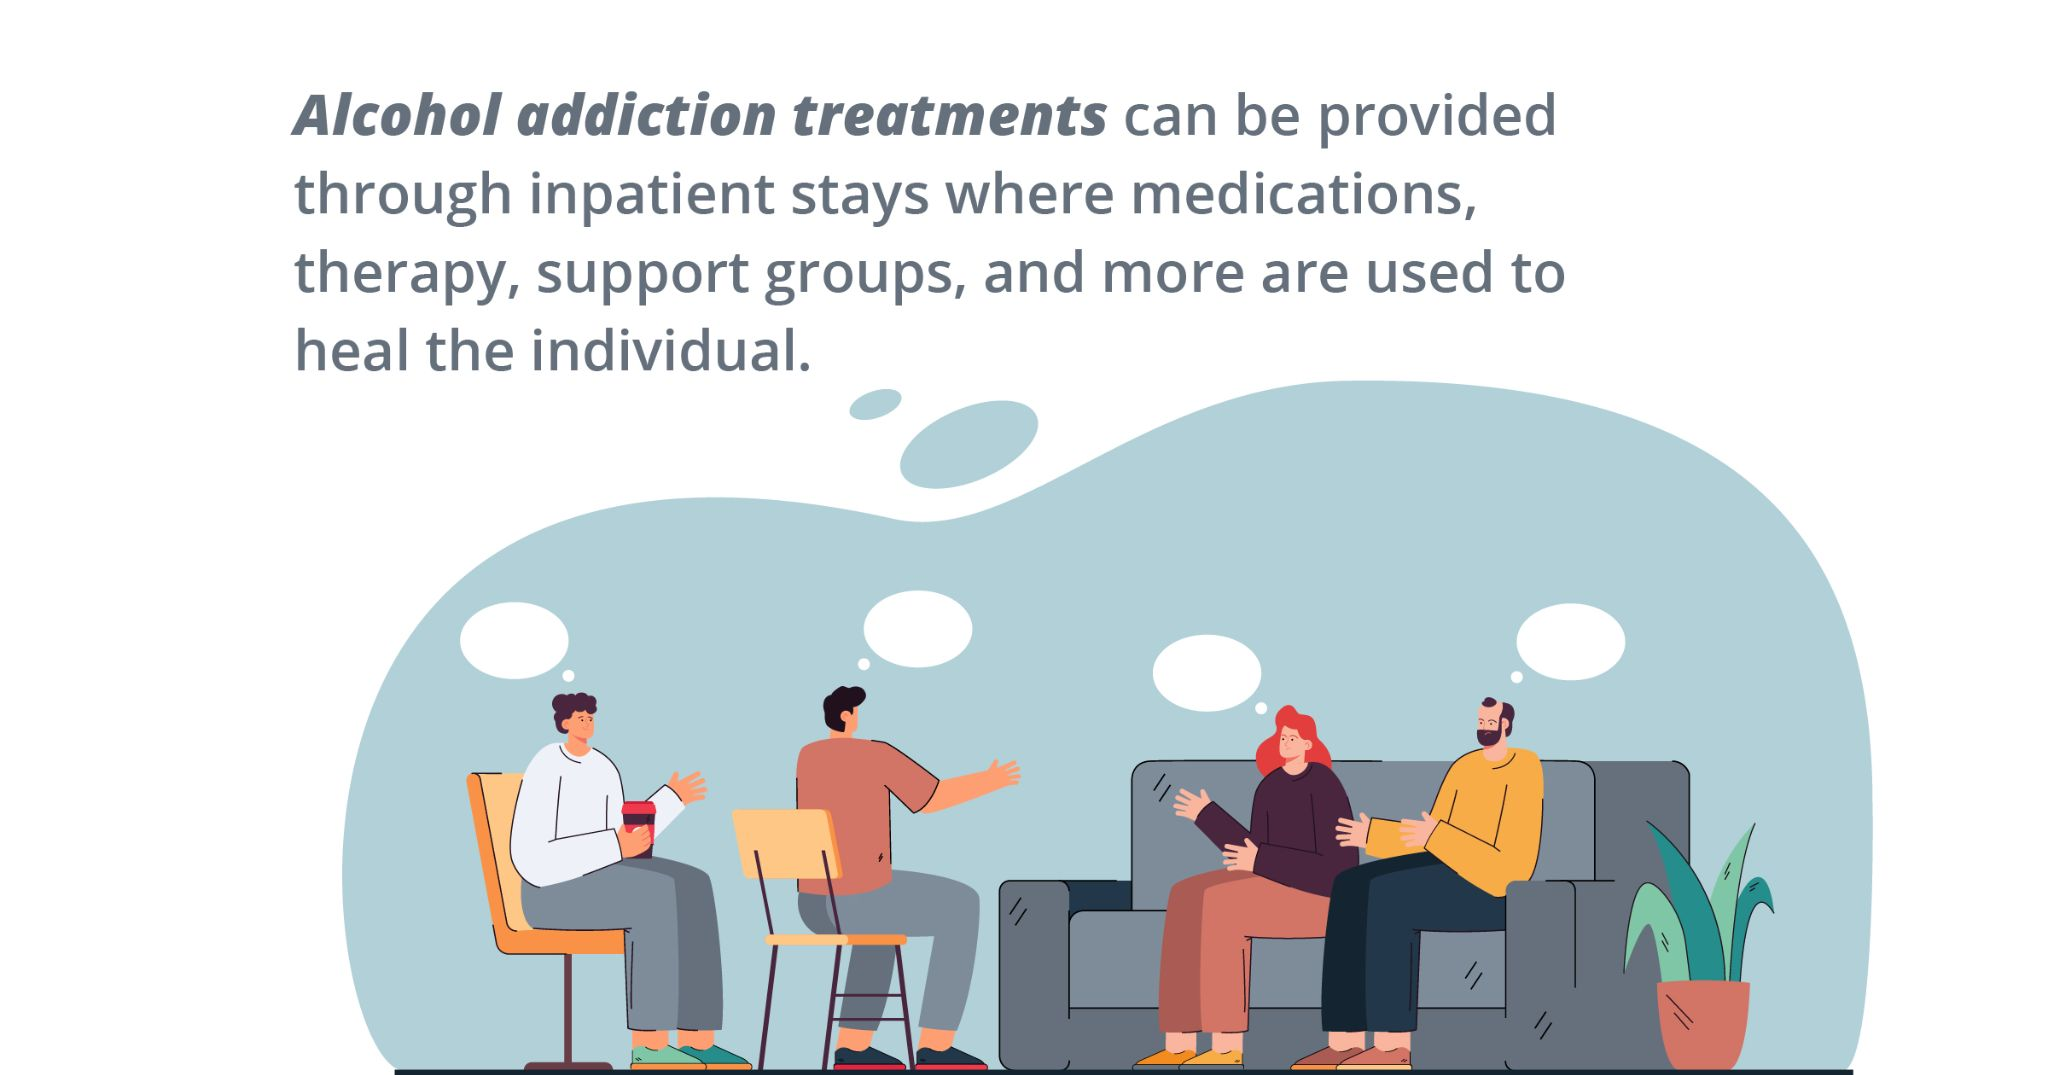 alcohol addiction treatments can be provided through inpatient stays where medications, therapy, support groups, and more are used to heal the individual.